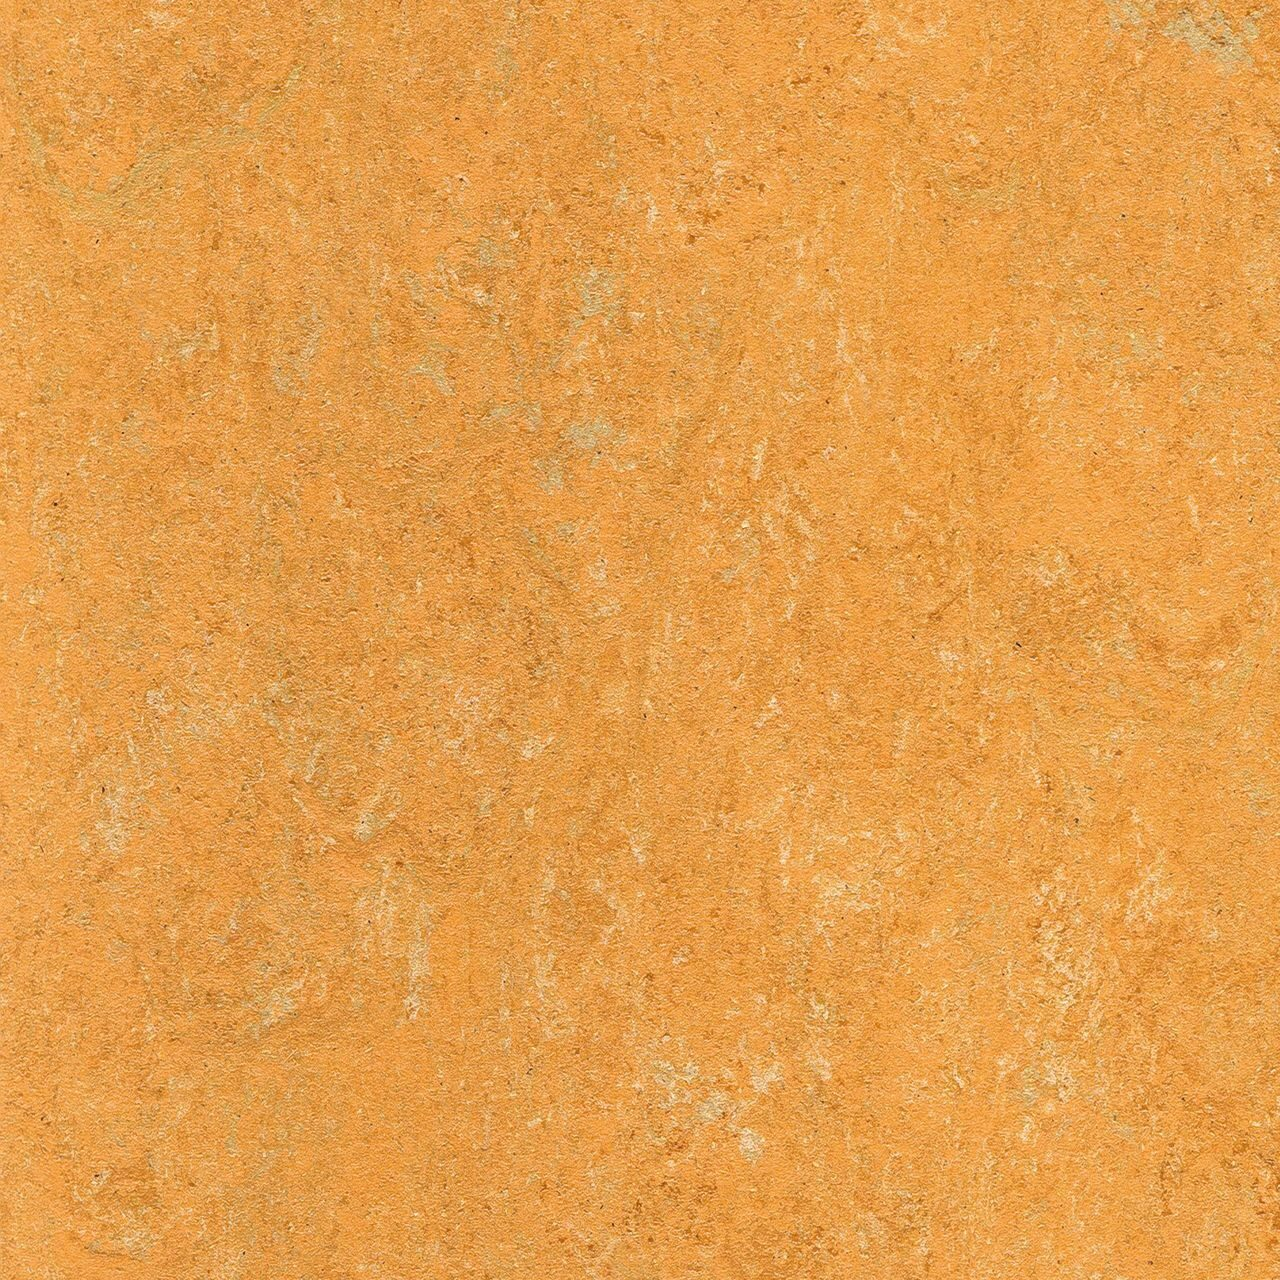 Marmorette 121-173 melon orange